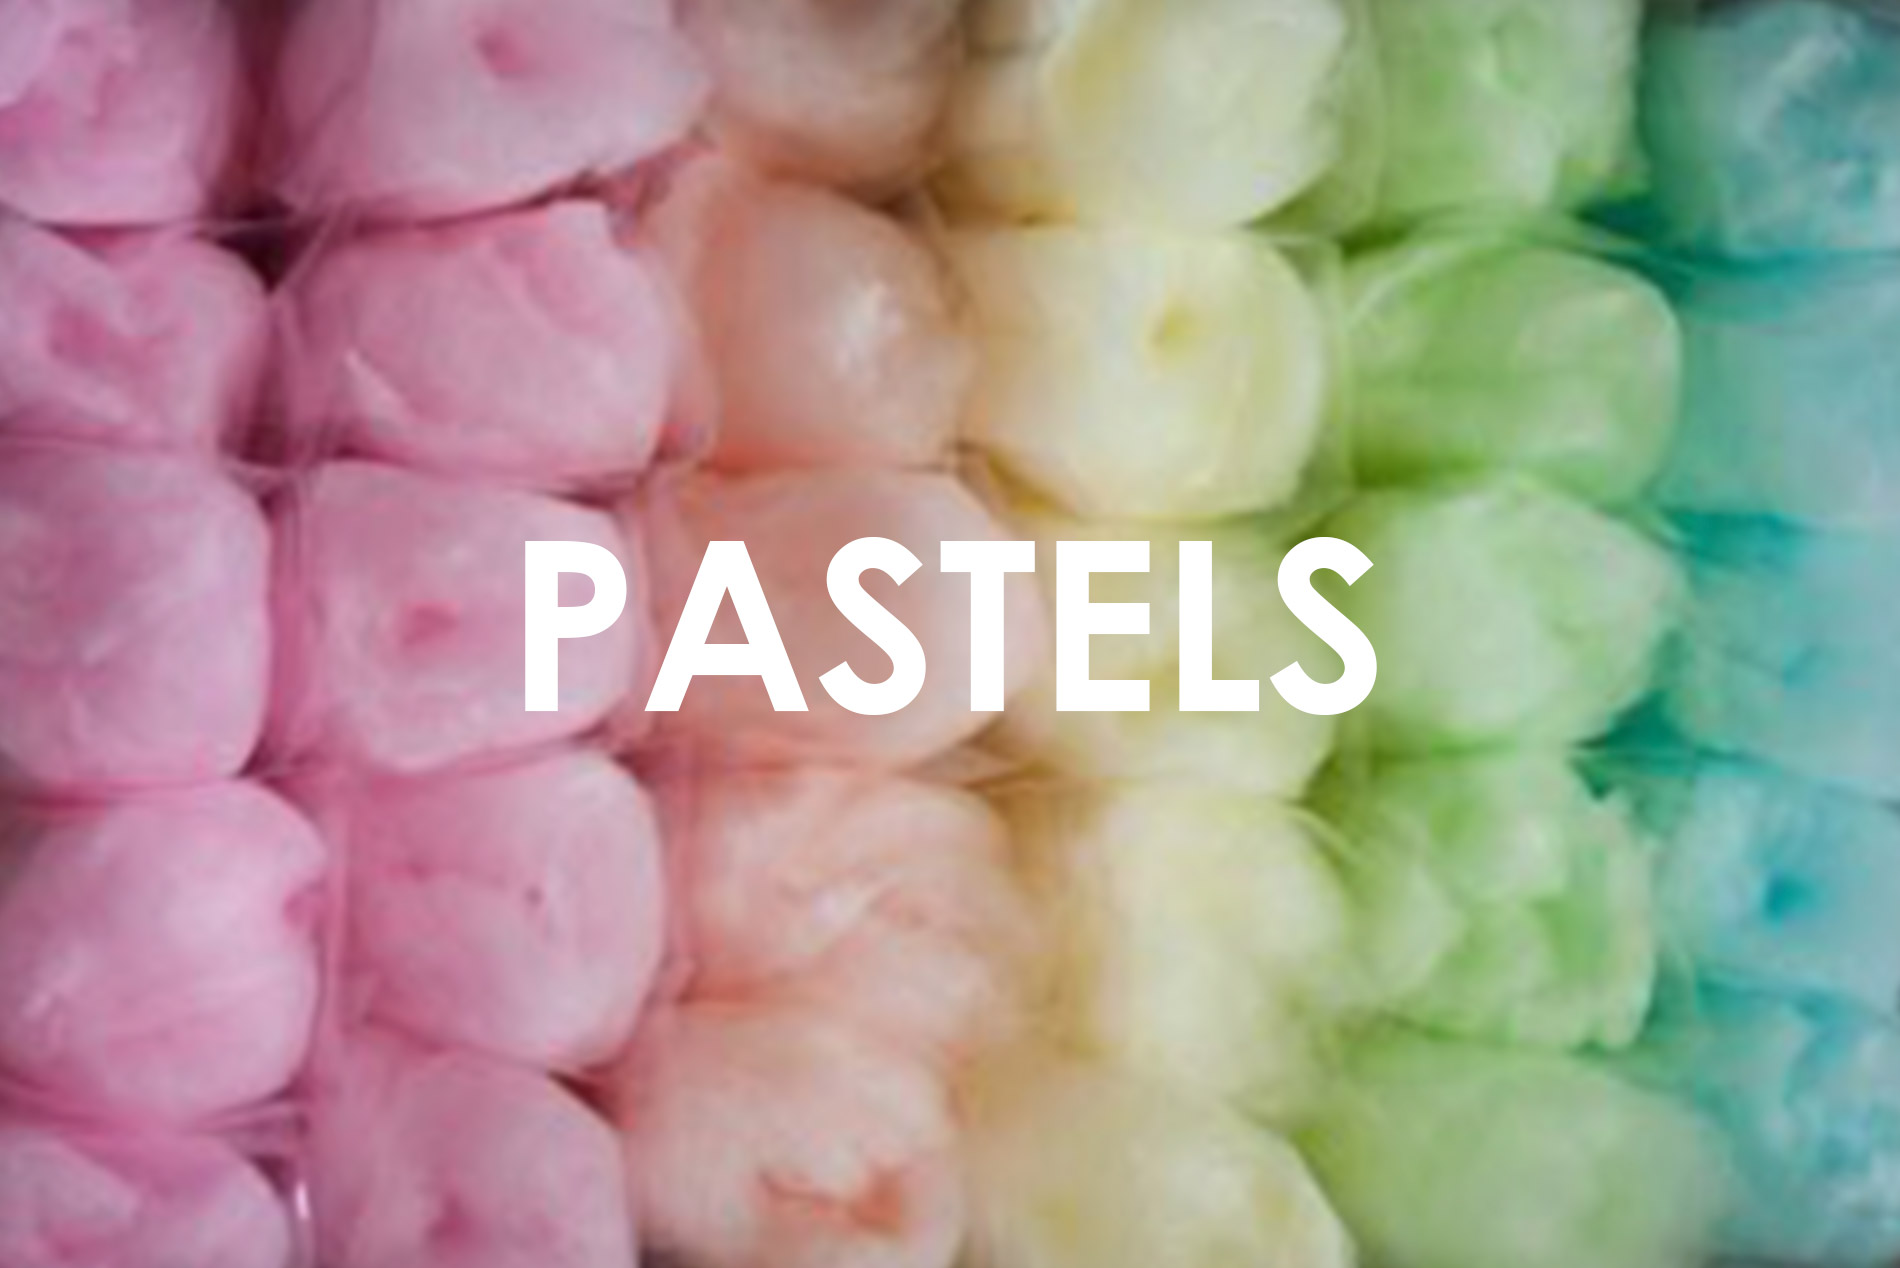 Pretty In Pastels - Manicure Pastels